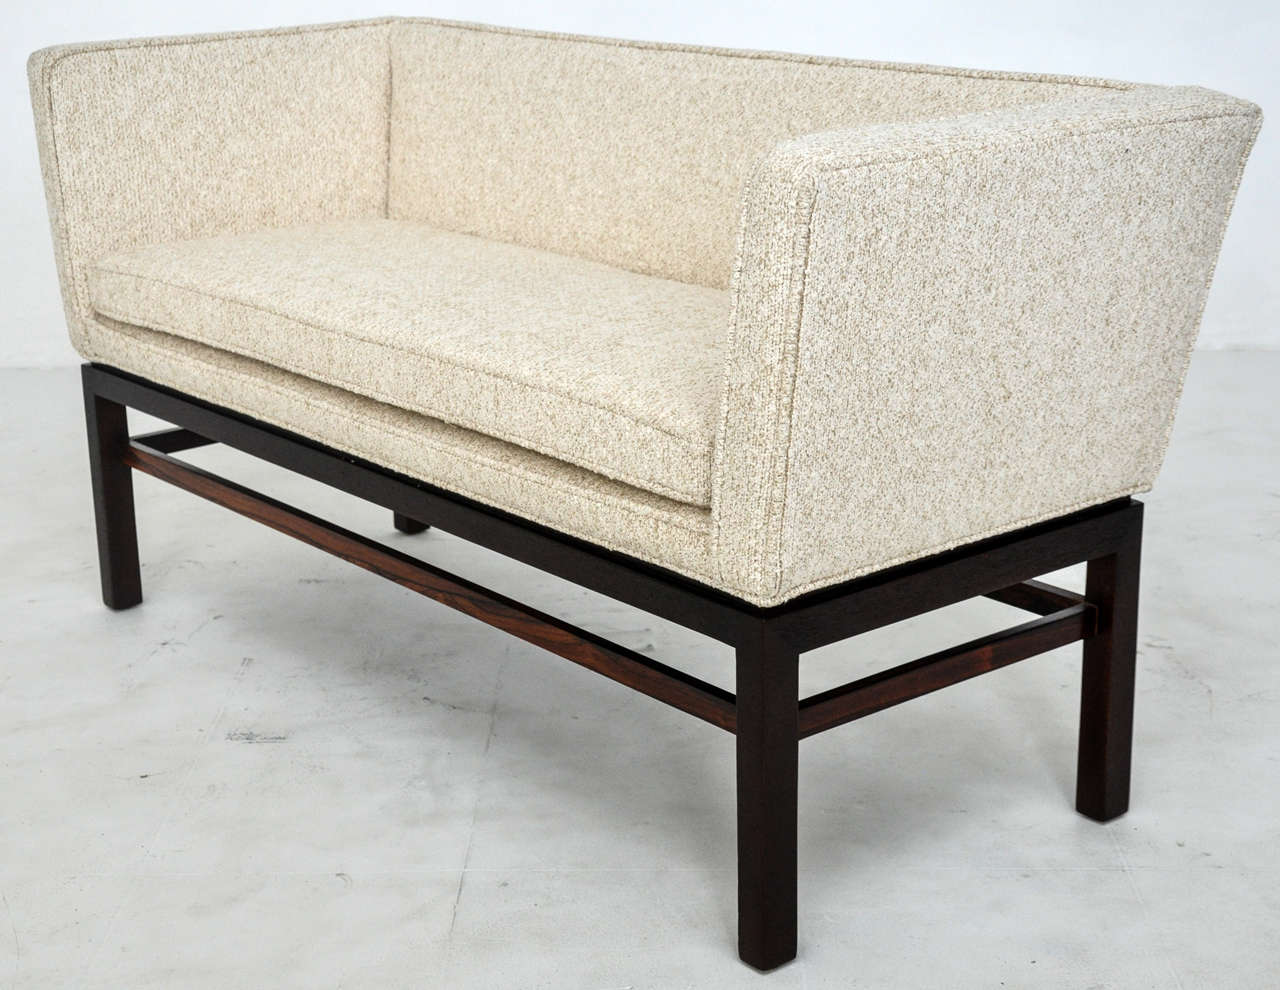 Dunbar Rosewood Settee Bench by Edward Wormley image 6